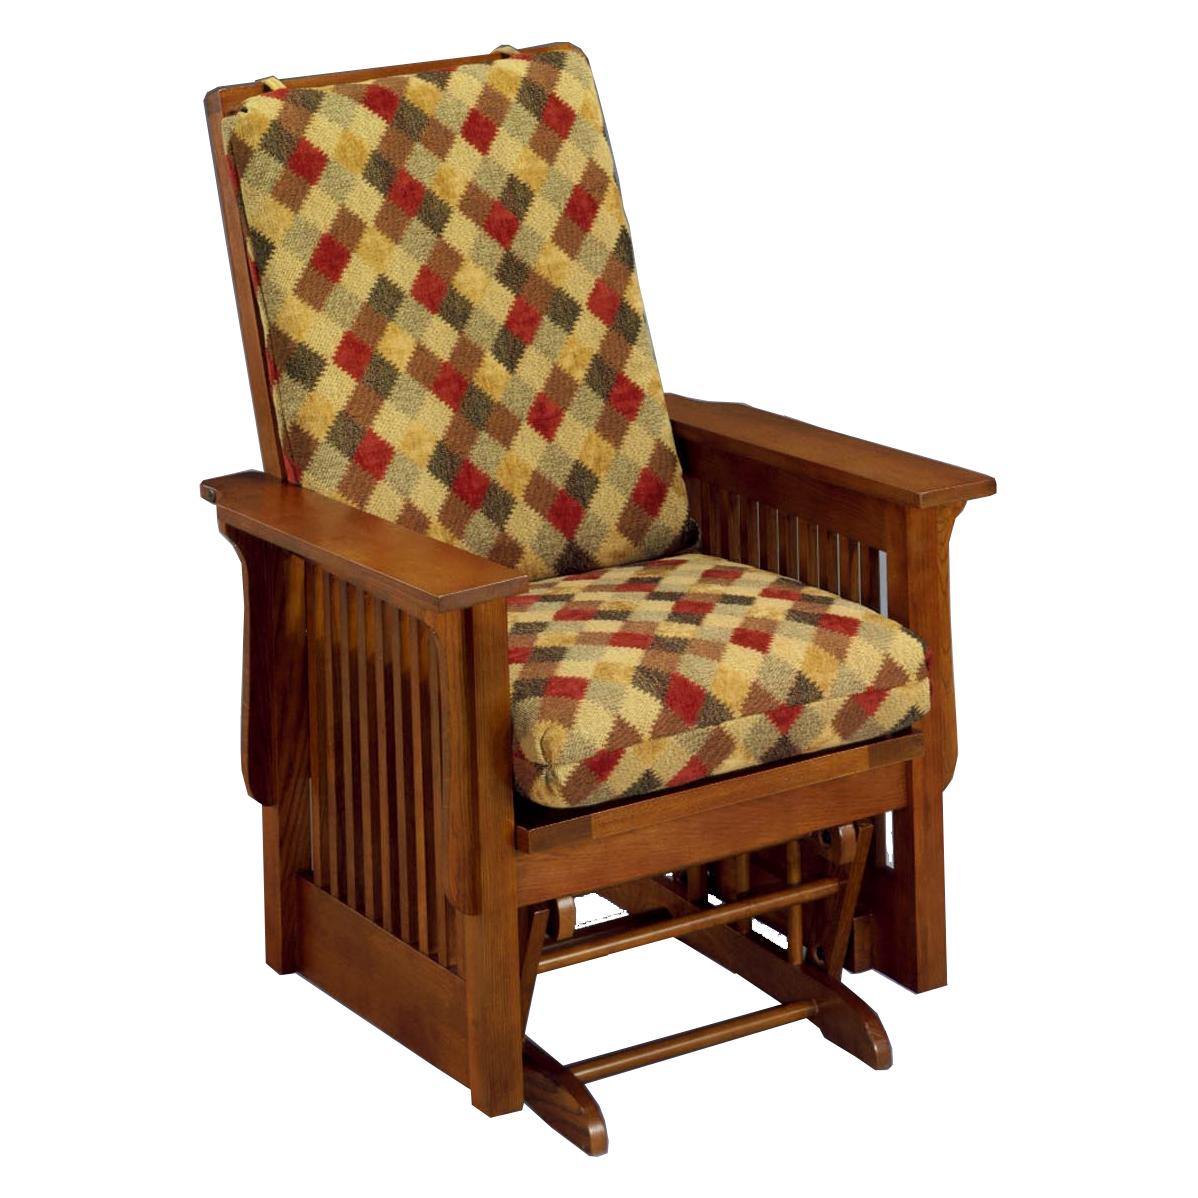 Best home furnishings glide rocker and ottomans c8117ho for Best furniture for home